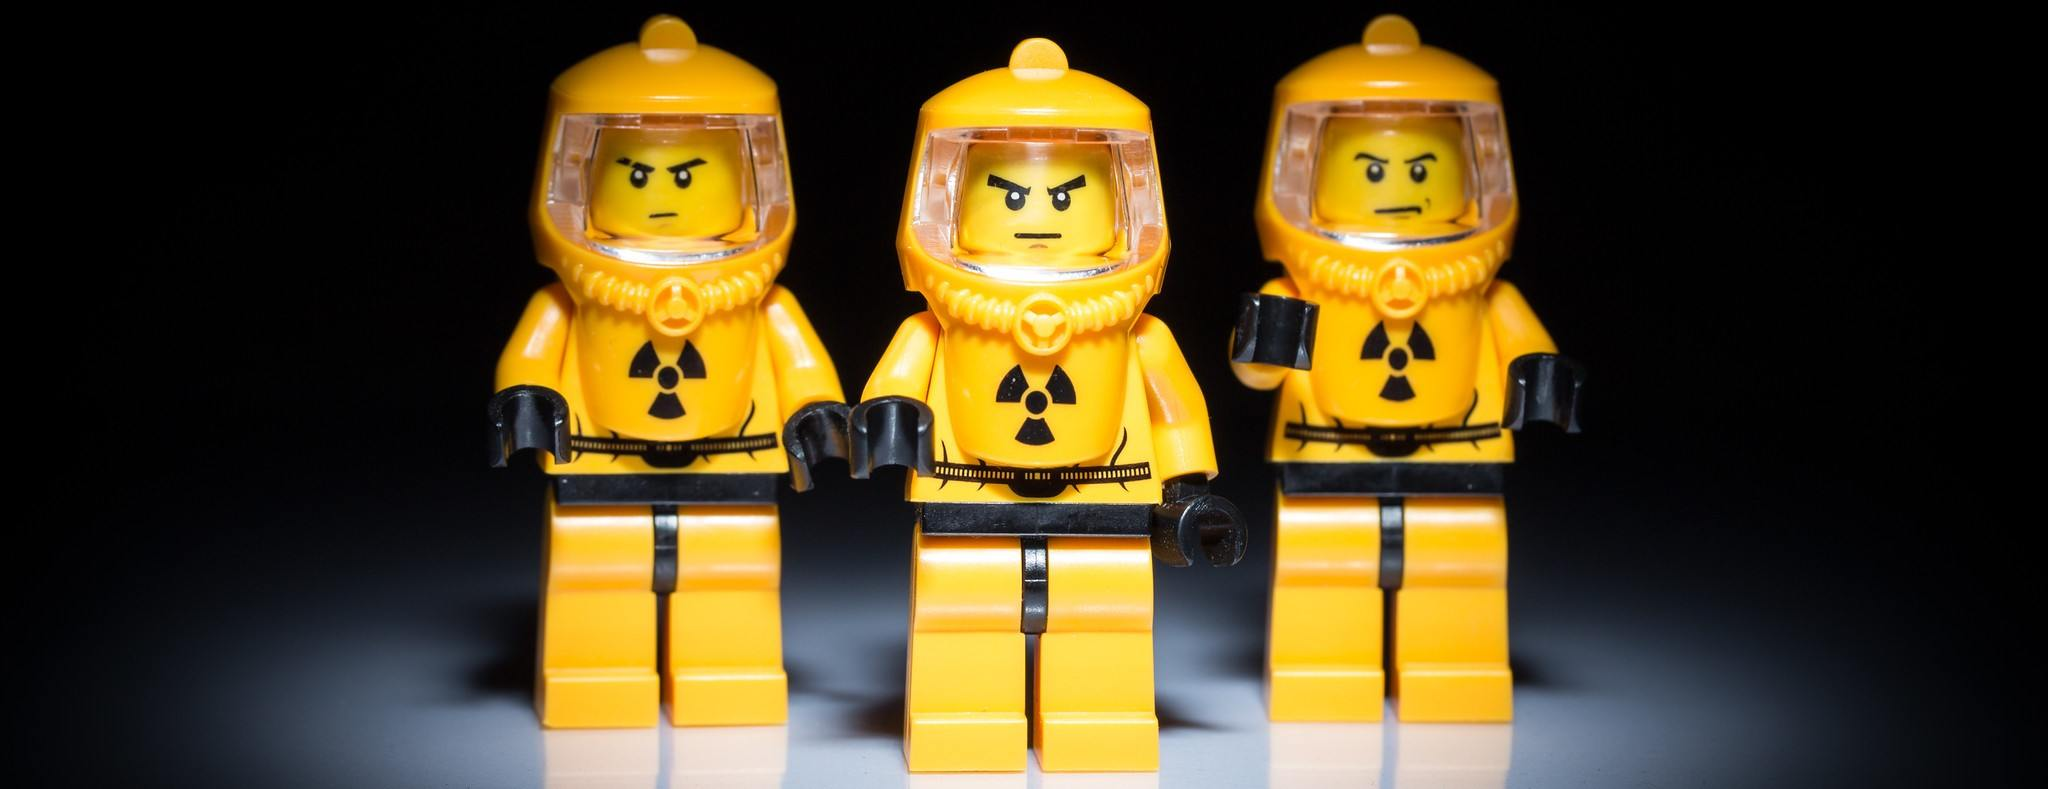 These three LEGOs in Hazmat suits are likely on their way to the gym.